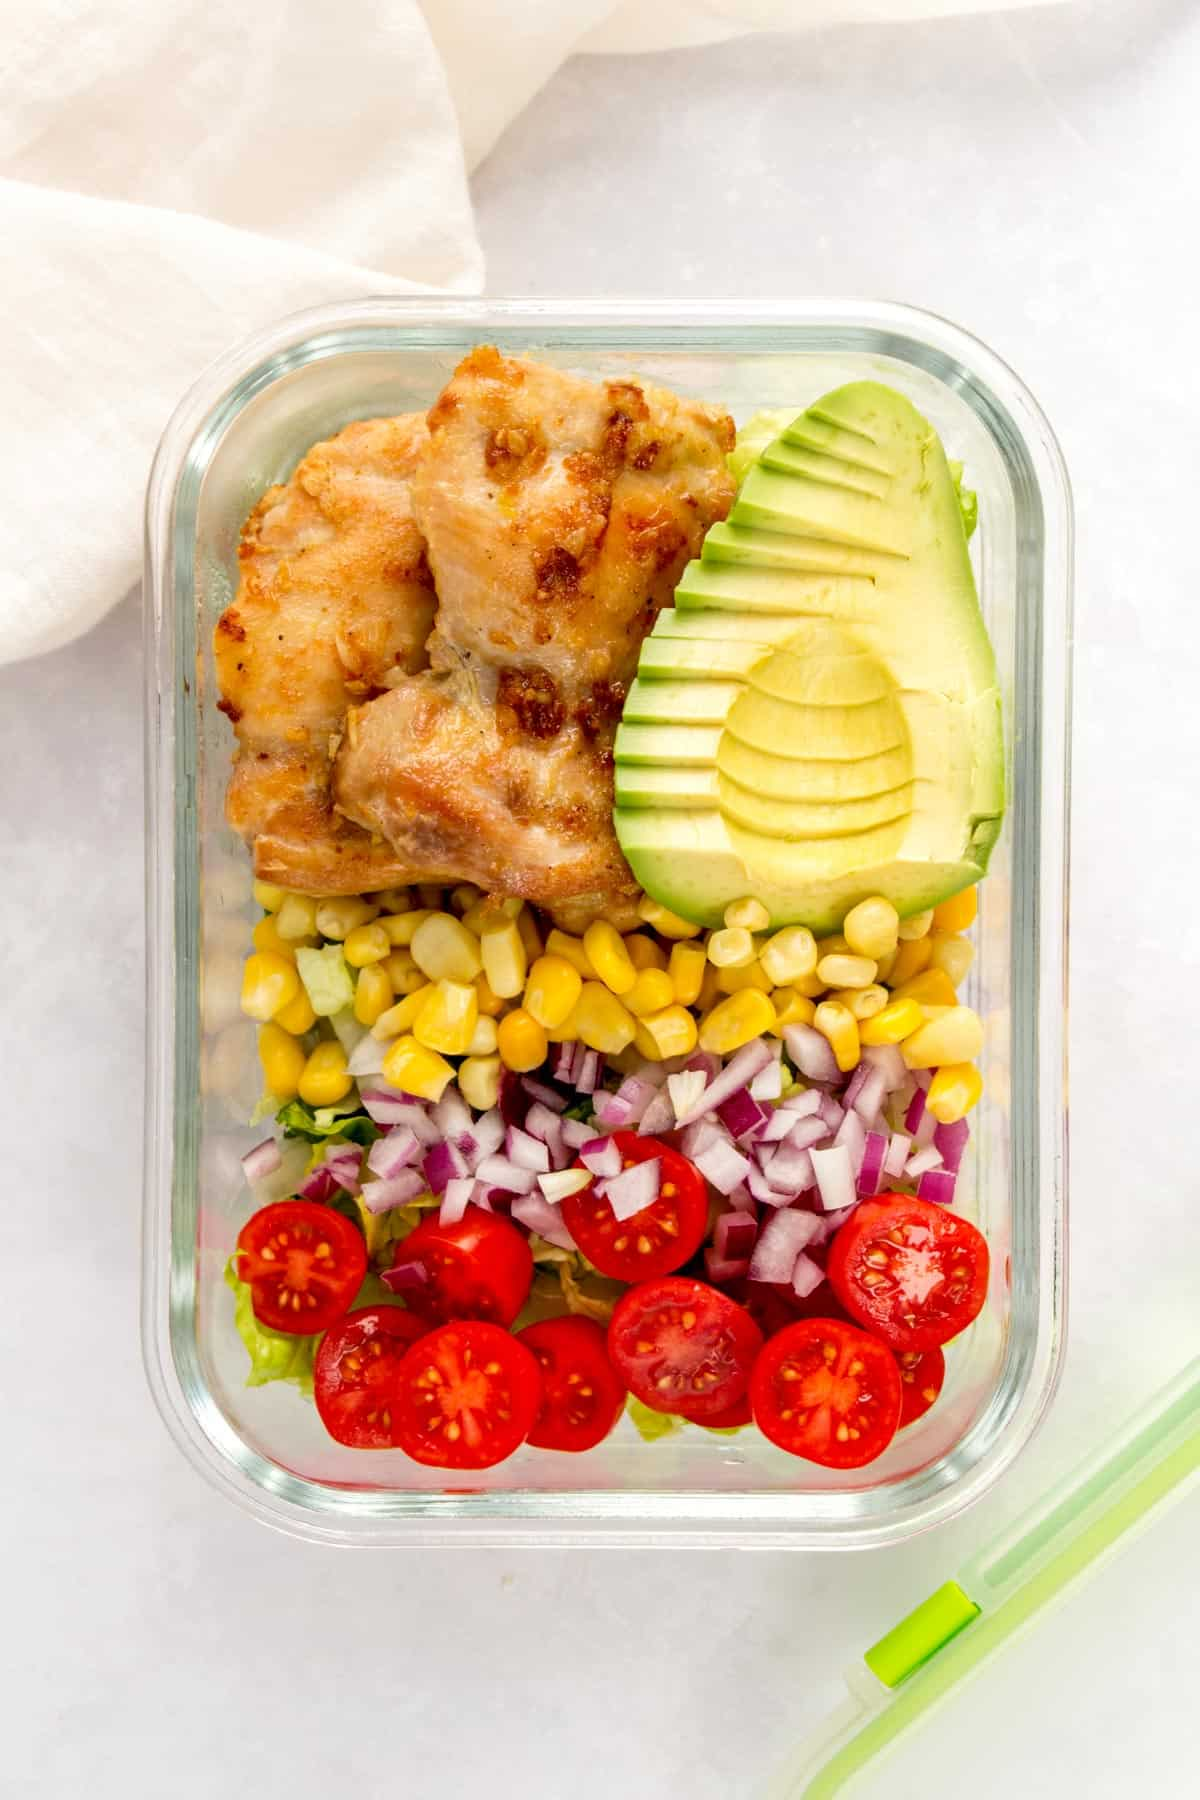 Meal prep container with lettuce, tomatoes, red onions, corn, chicken thighs, and a sliced avocado.